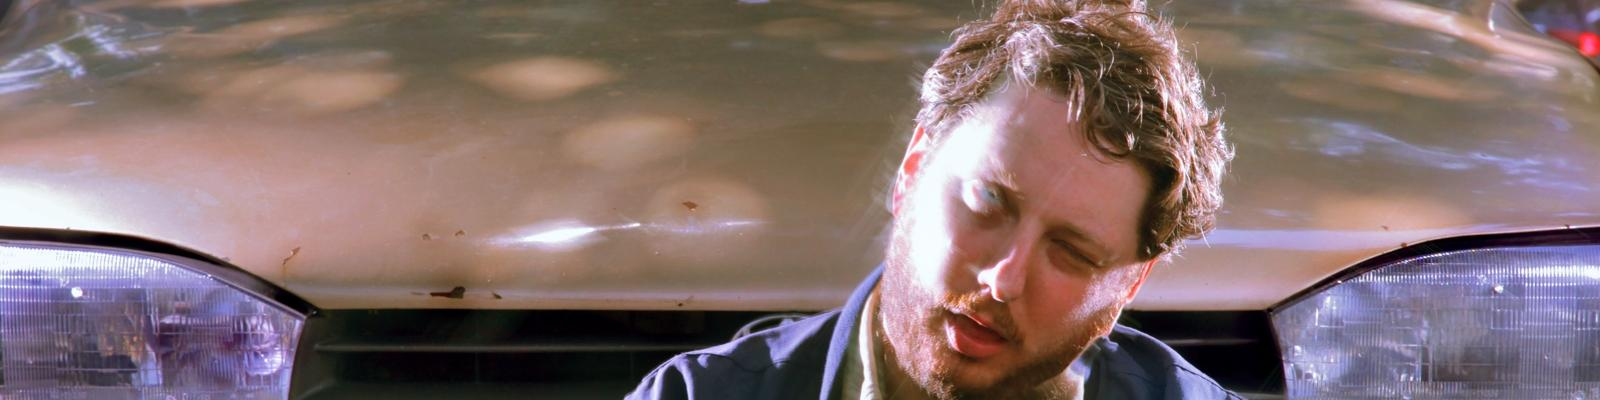 Oneohtrix Point Never 02